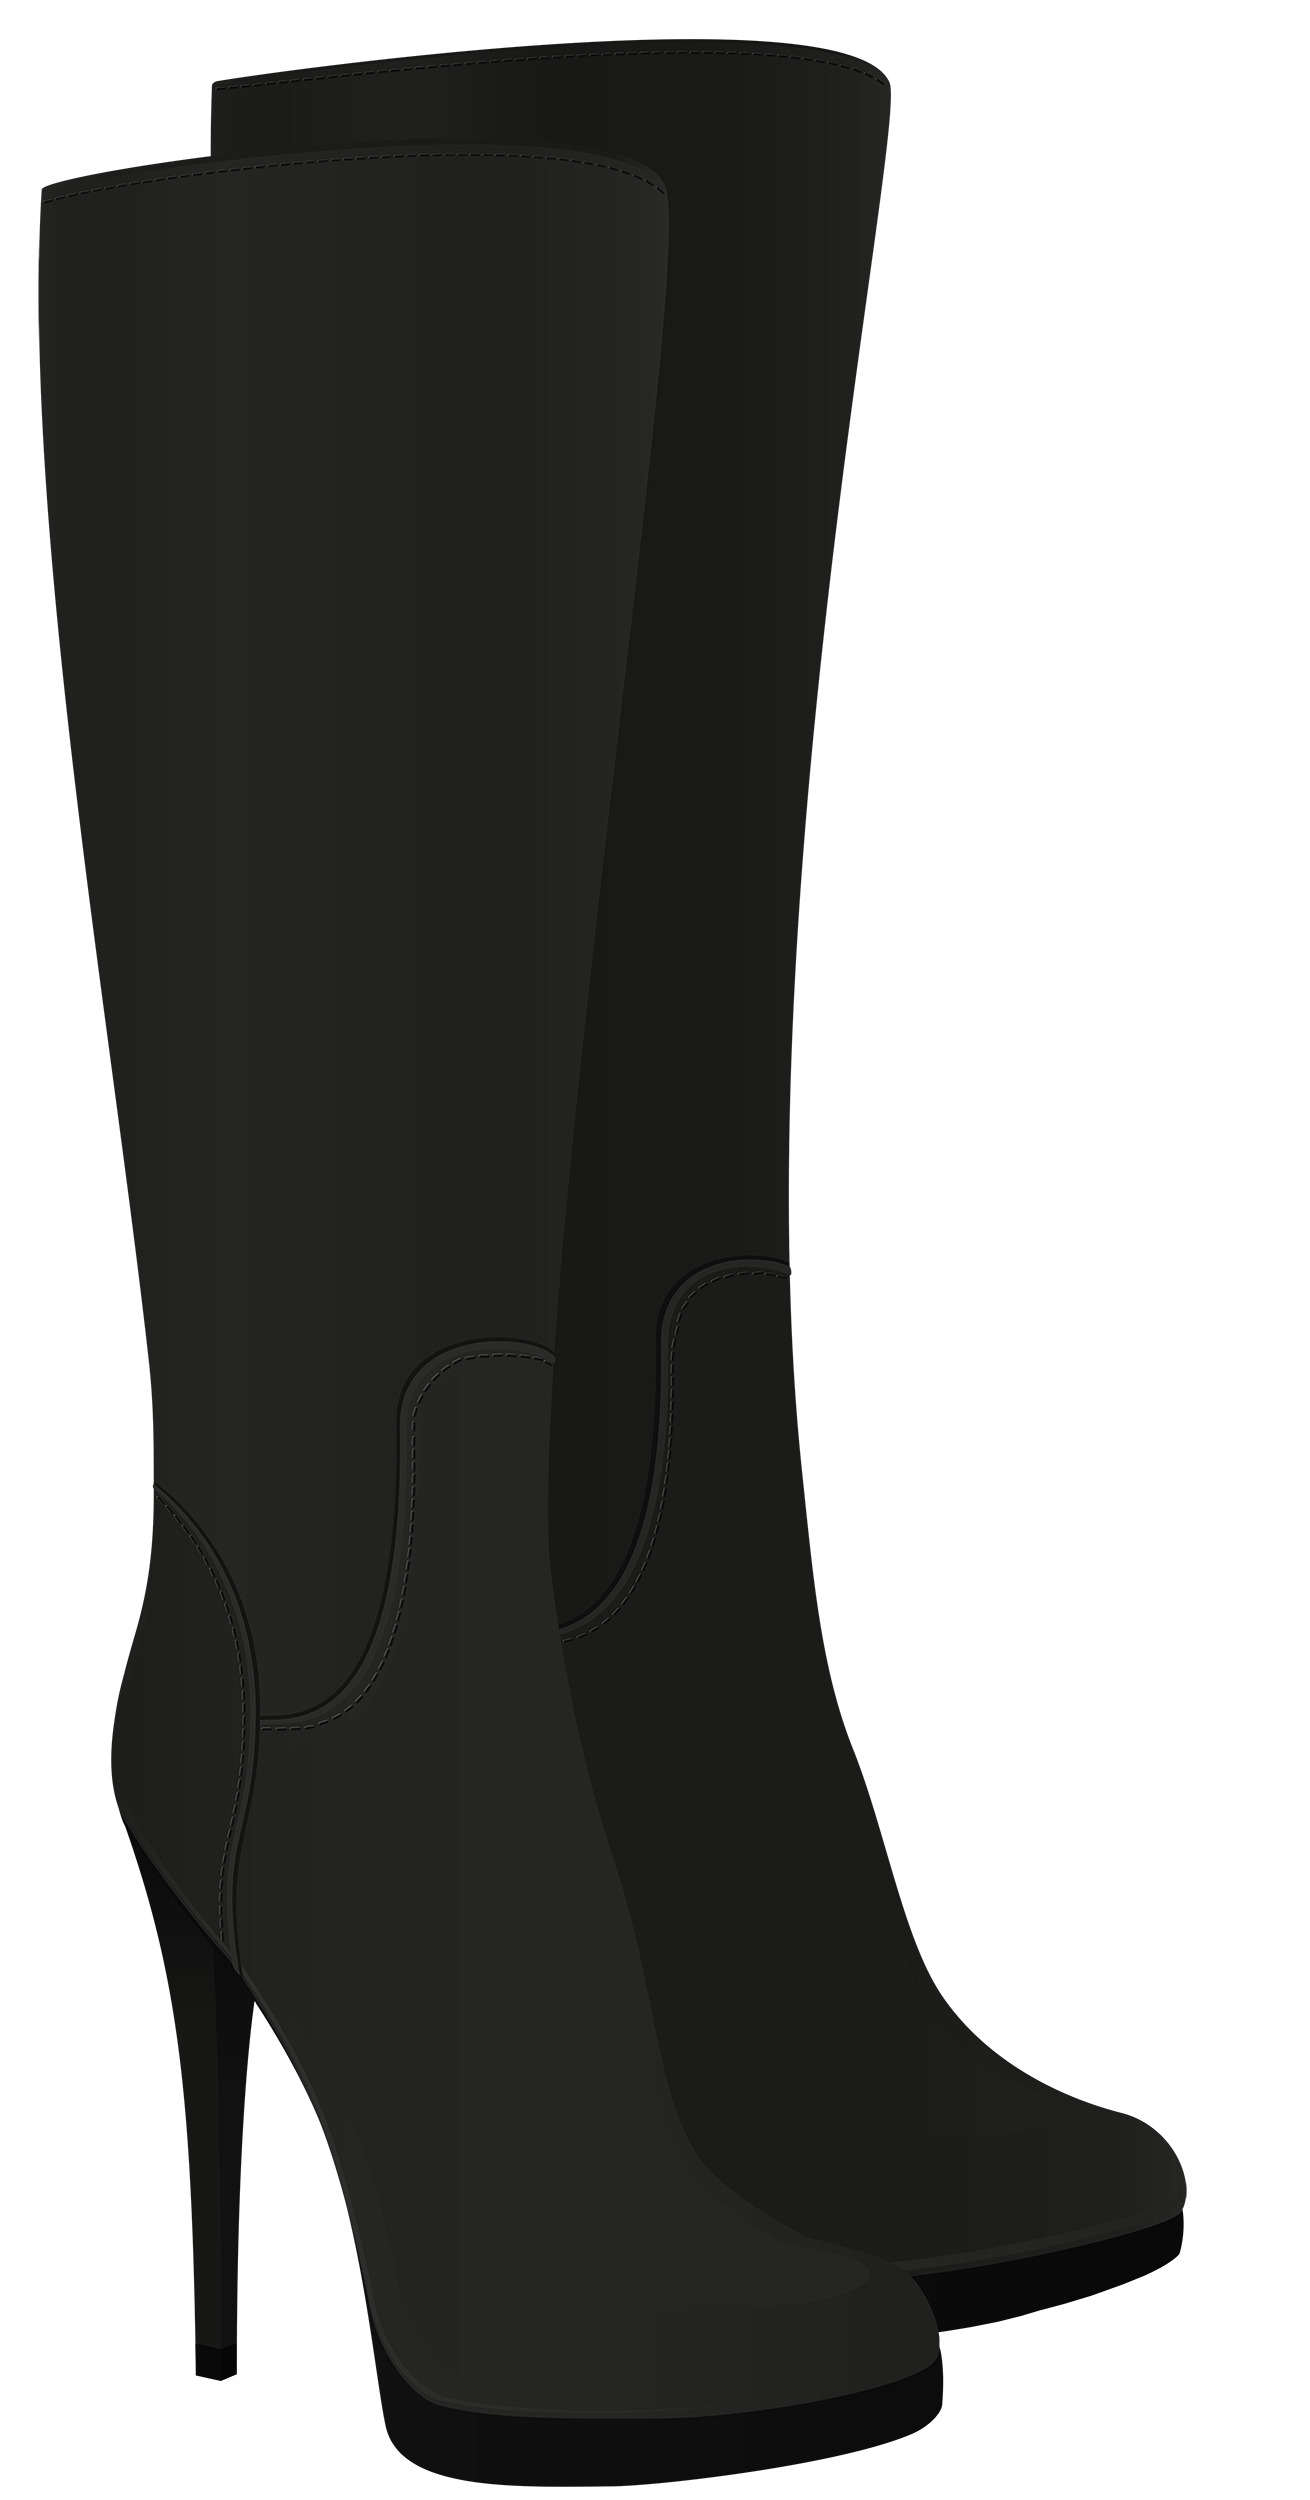 Boot clipart high boot. Female black boots png